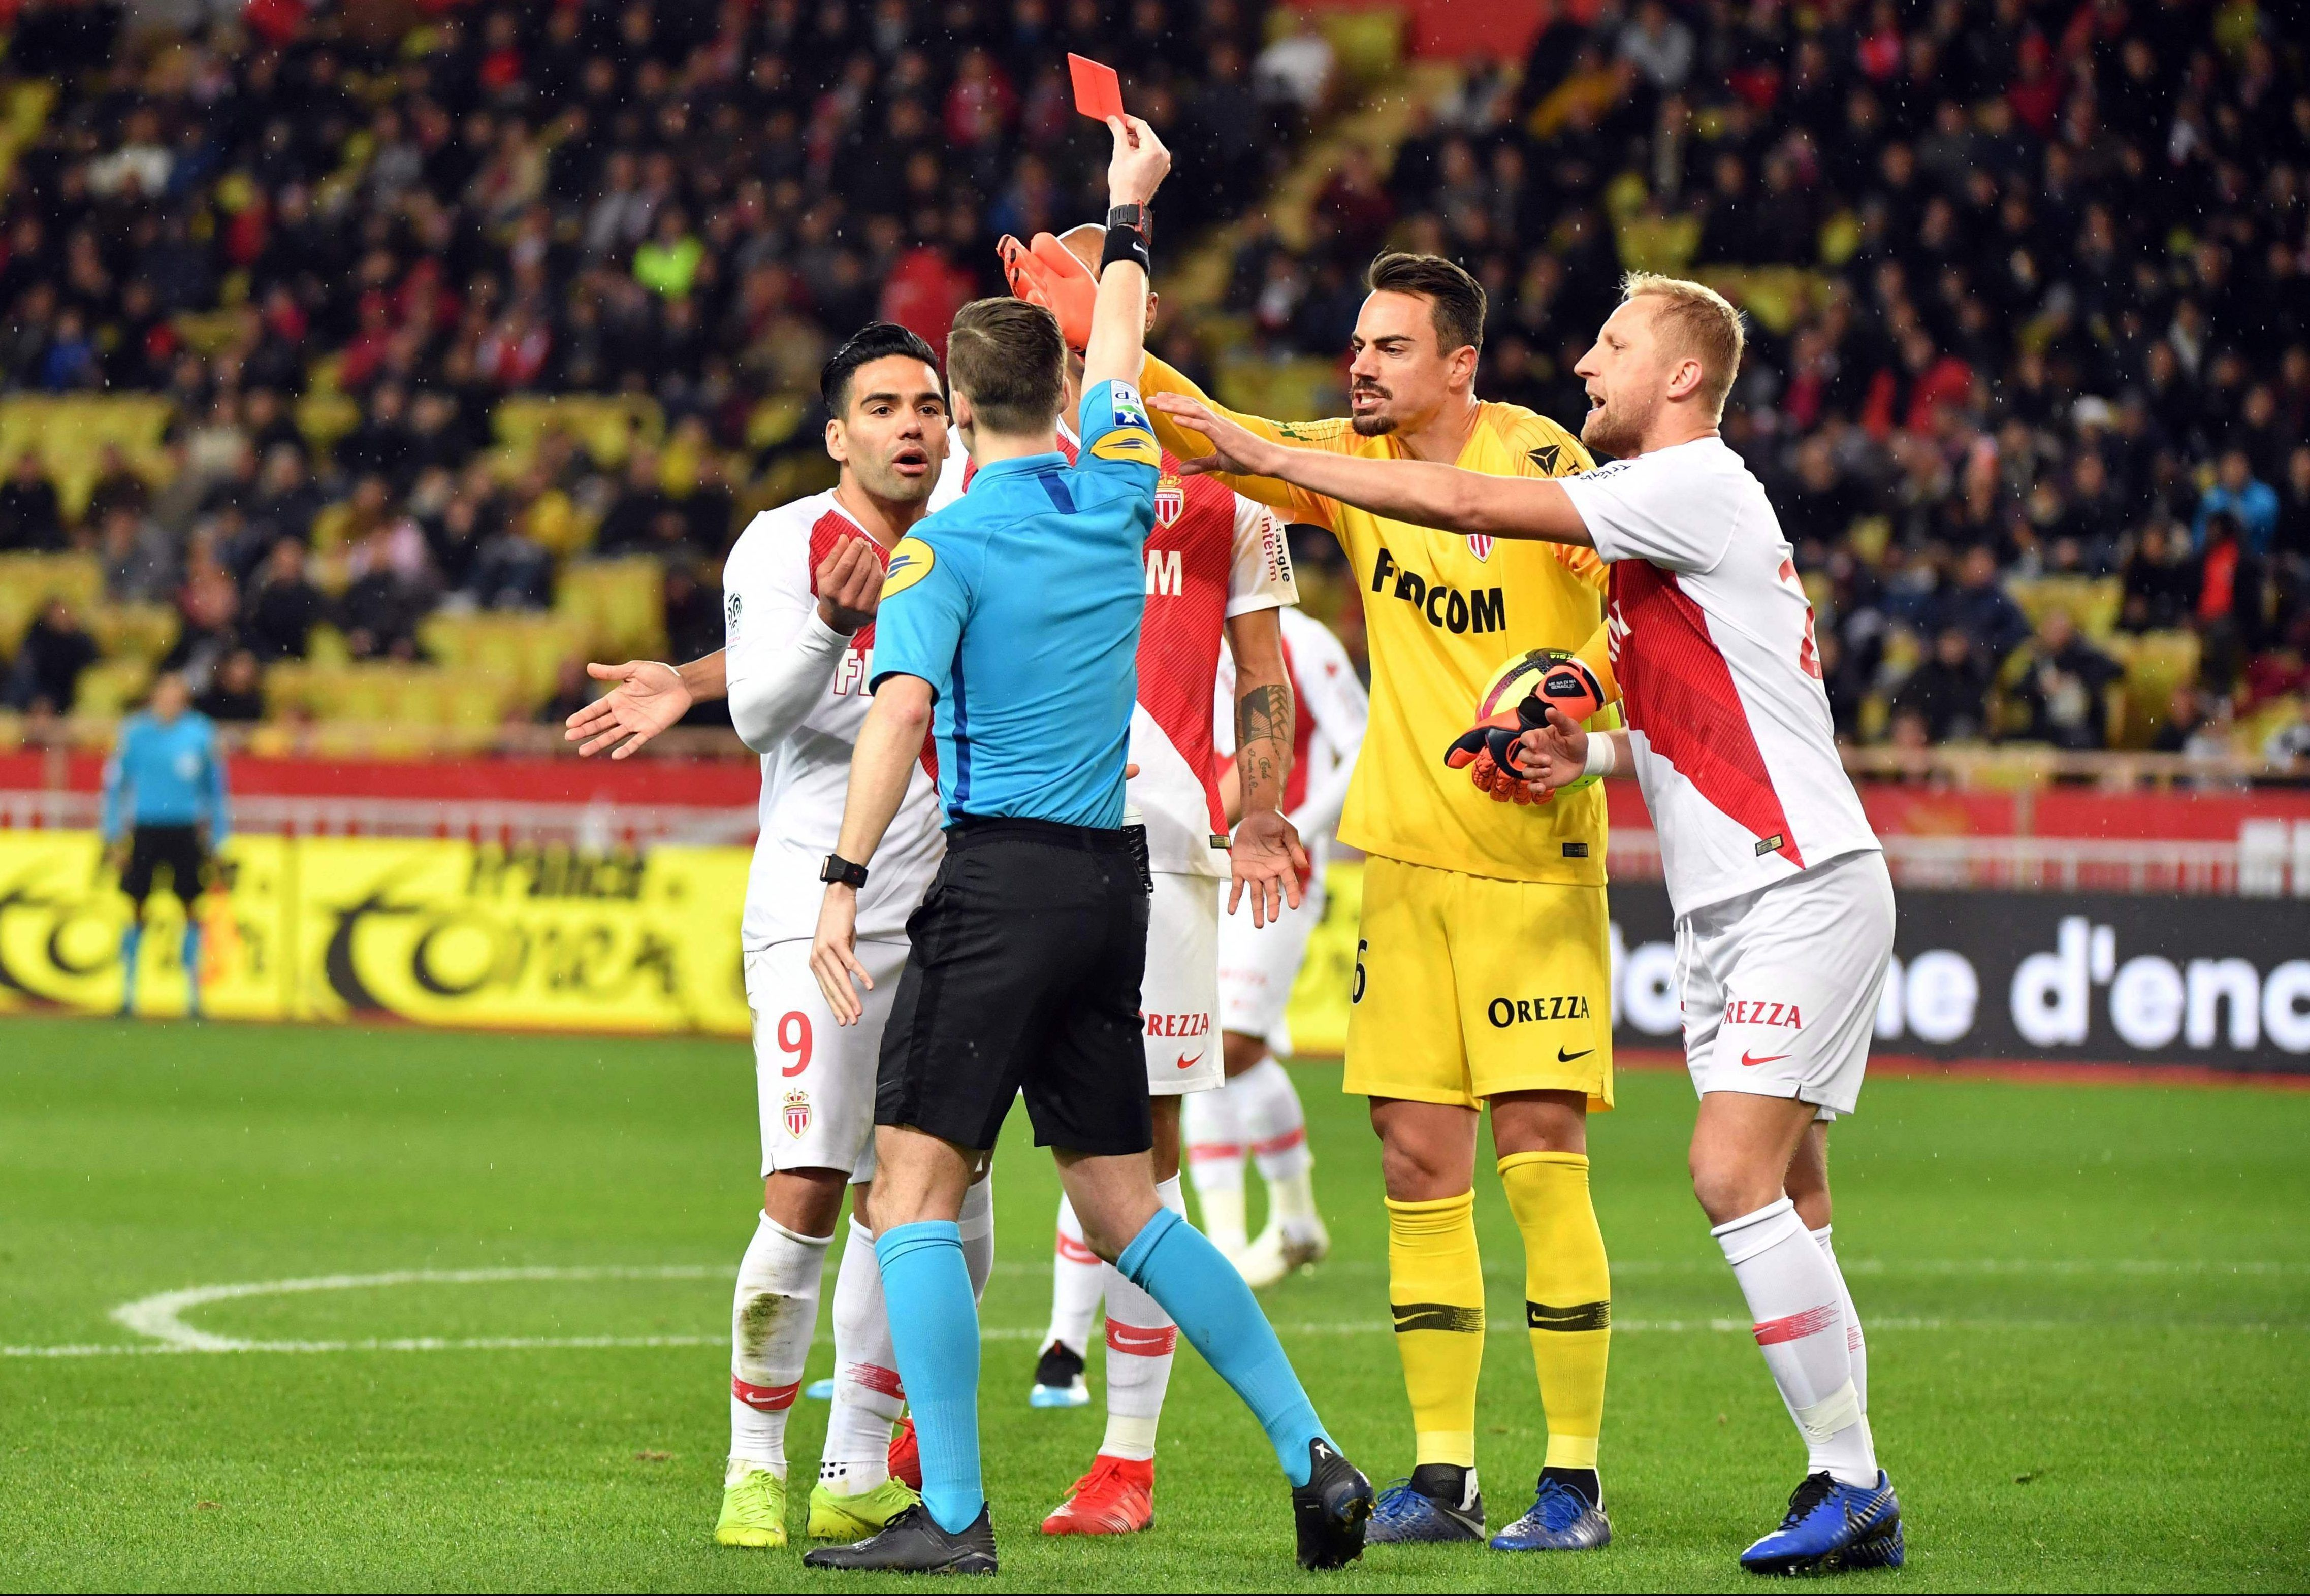 Monaco terminate Naldos contract after two red cards in just seven games and with defender not playing this season